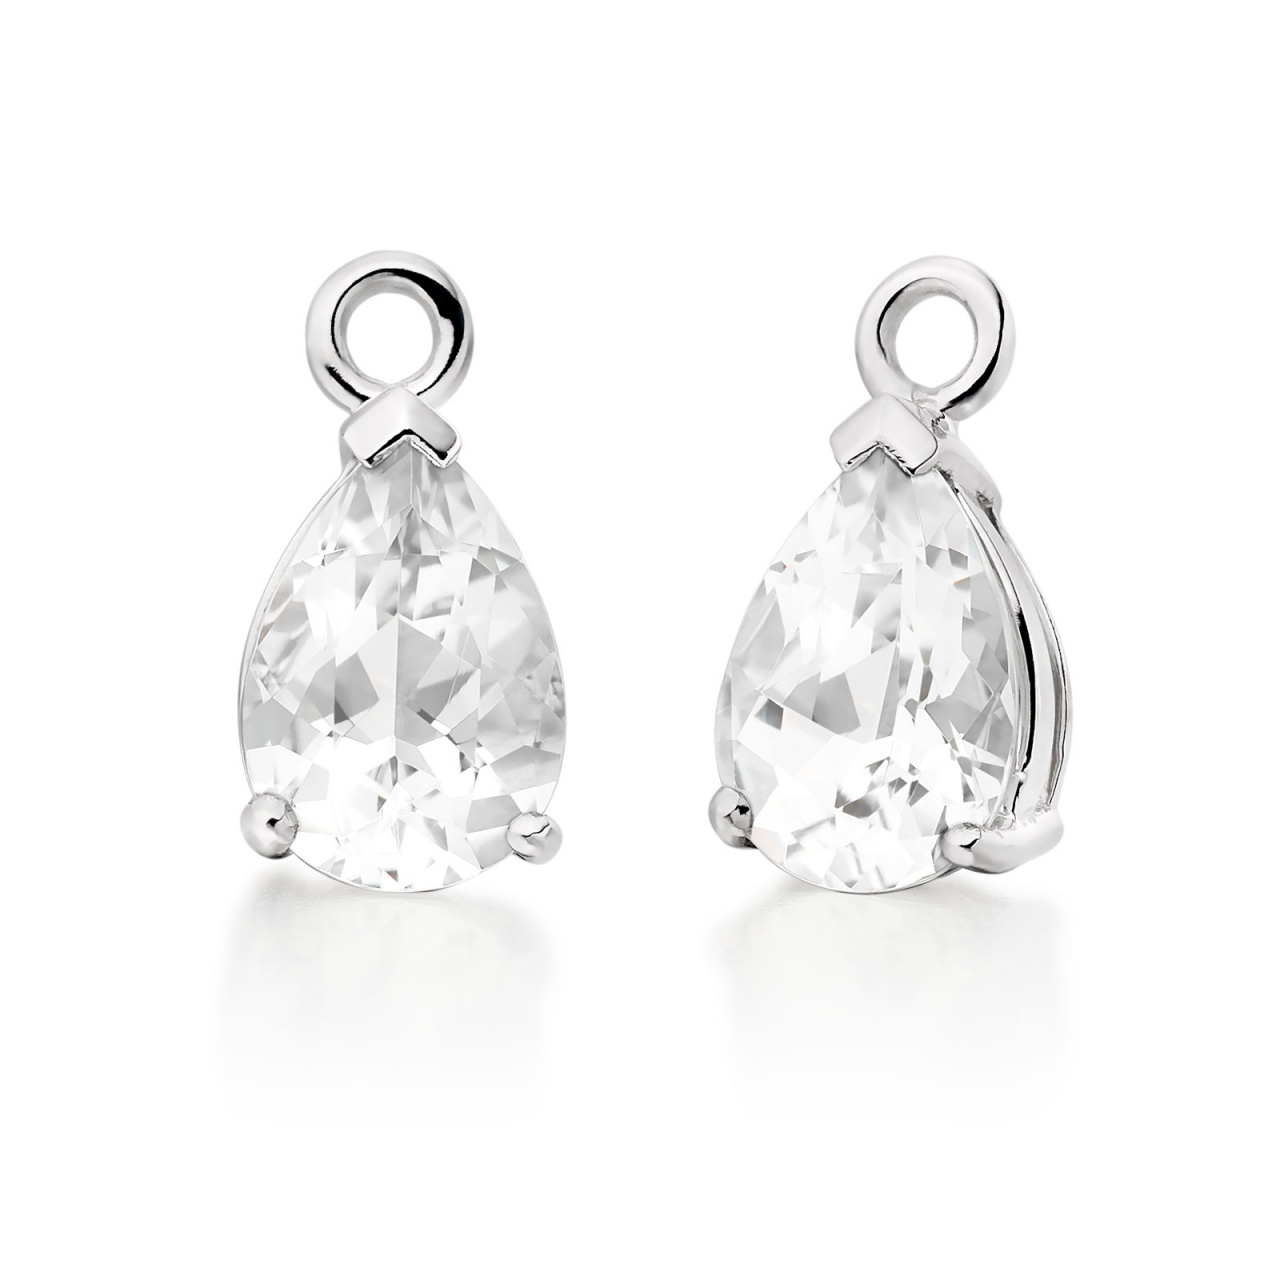 White Gold Diamond Leverbacks with Mythologie White Topaz Drops-EAWTWG1276-1